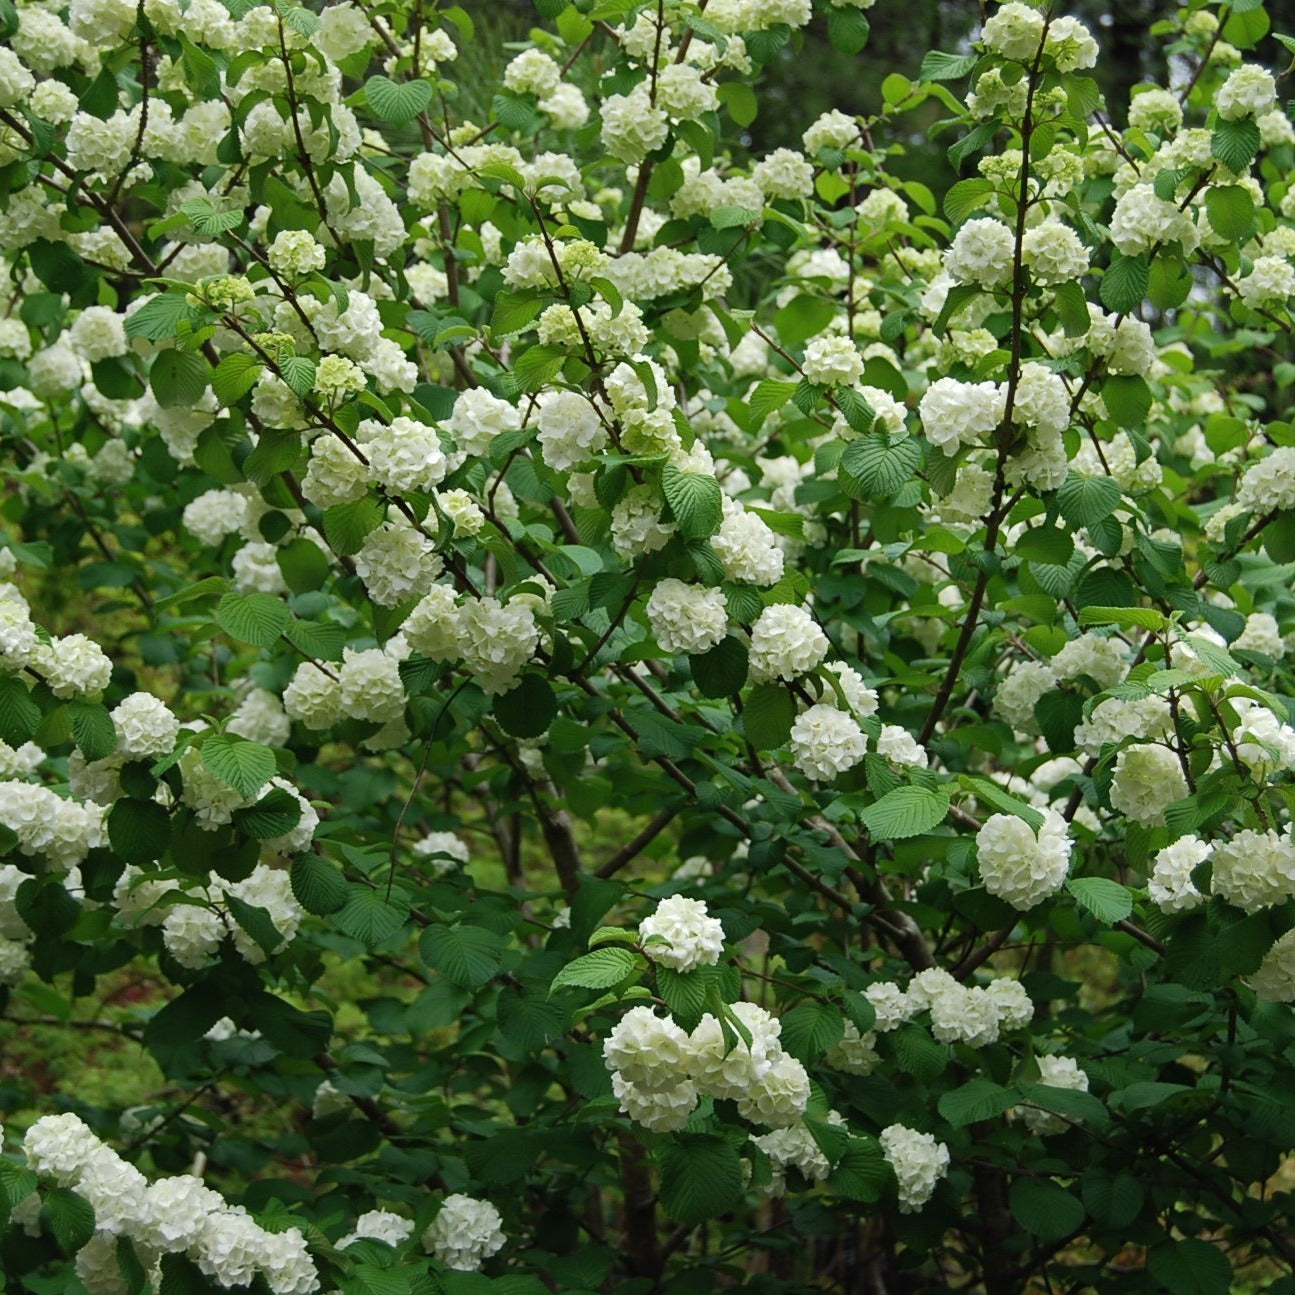 "POPCORN VIBURNUM-Hundreds of 3"" round popcorn ball flowers line every branch, virtually obscuring the foliage in the spring. PIXIES_DUD"